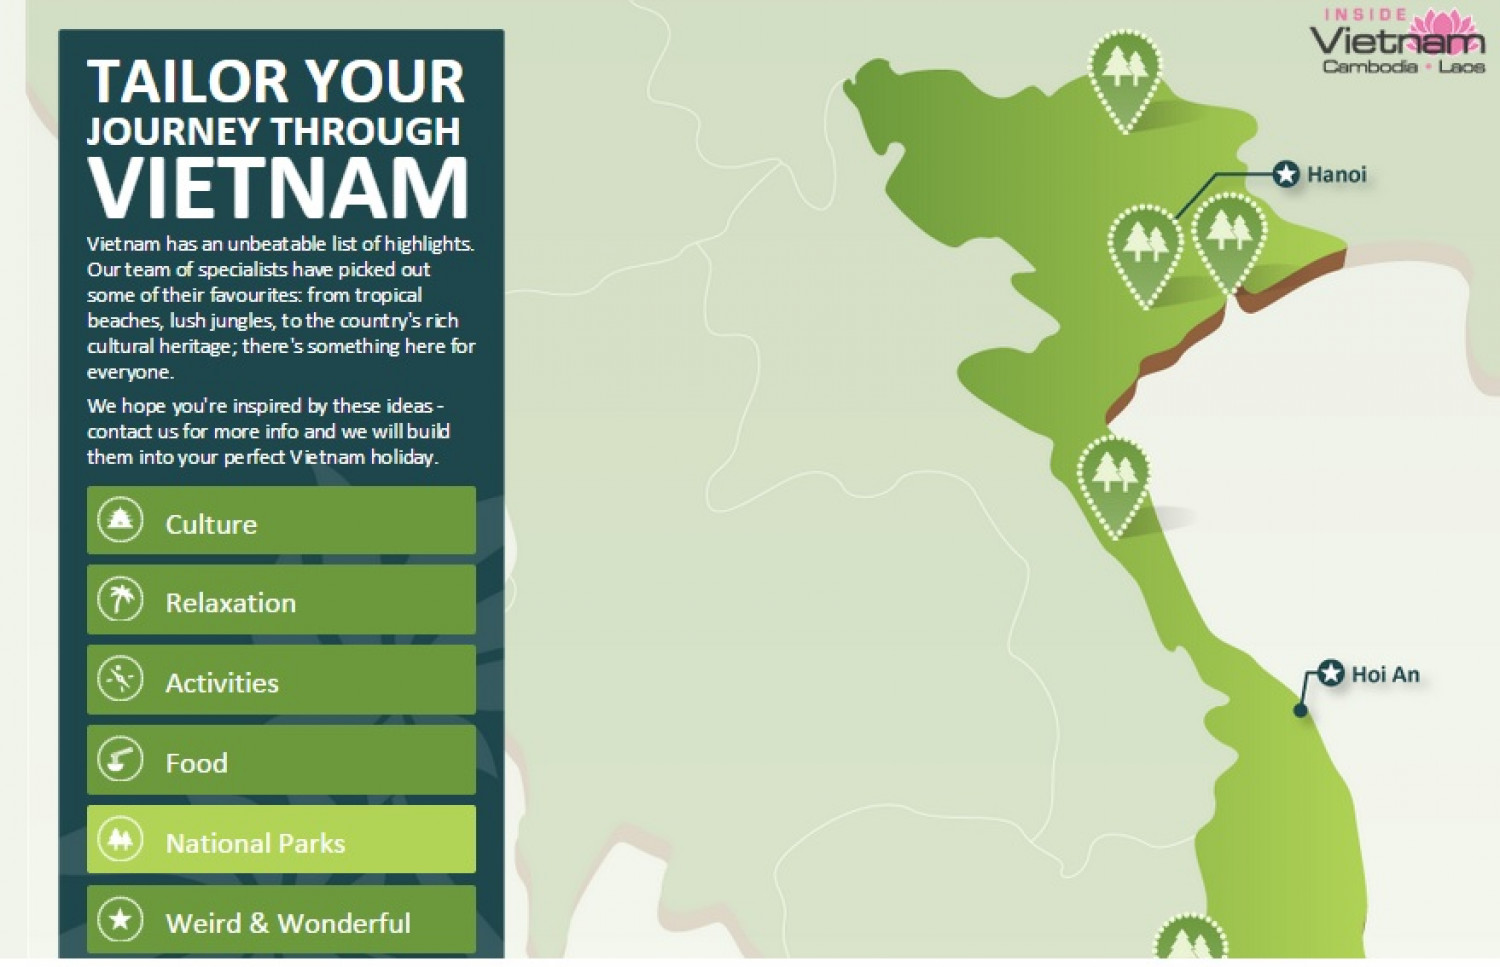 TAILOR YOUR JOURNEY THROUGH VIETNAM - INTERACTIVE MAP Infographic